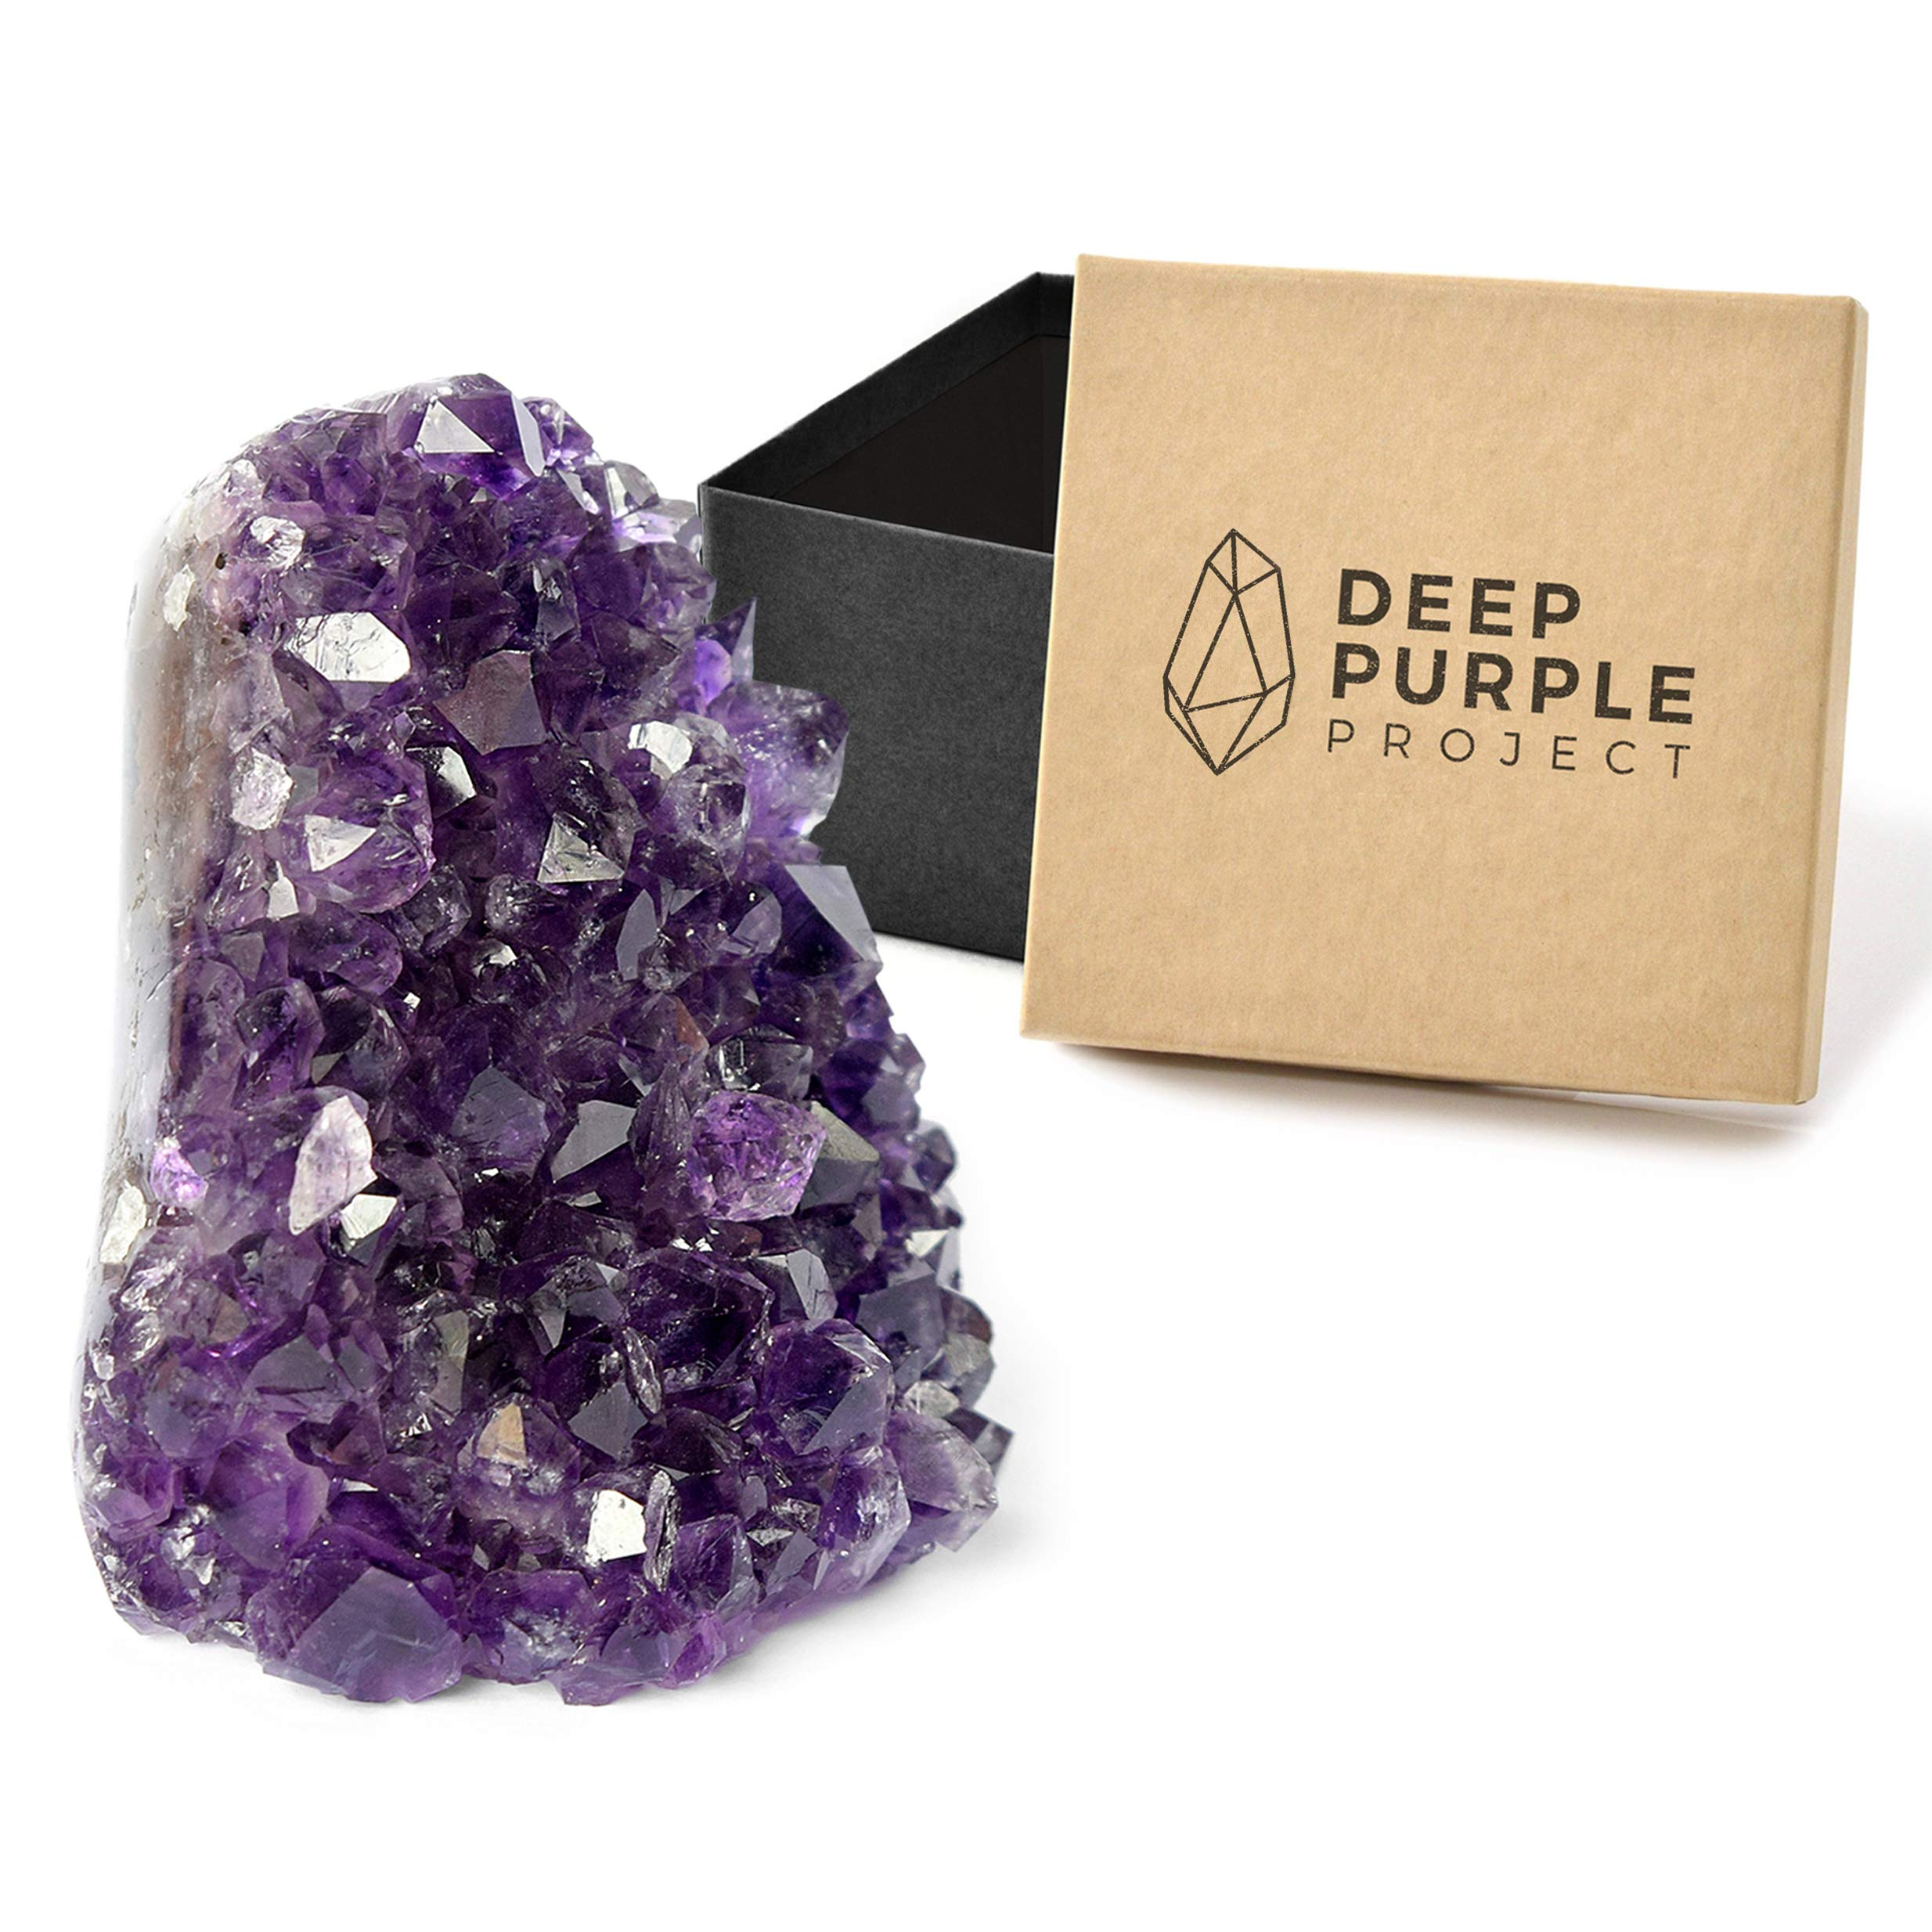 Deep Purple Project Amethyst Crystal Geodes 1/2 to 1 Lb in a Premium Gift Box, Large Clusters Perfect for Spiritual Home Decor, Polished Quartz from Uruguay by Deep Purple Project